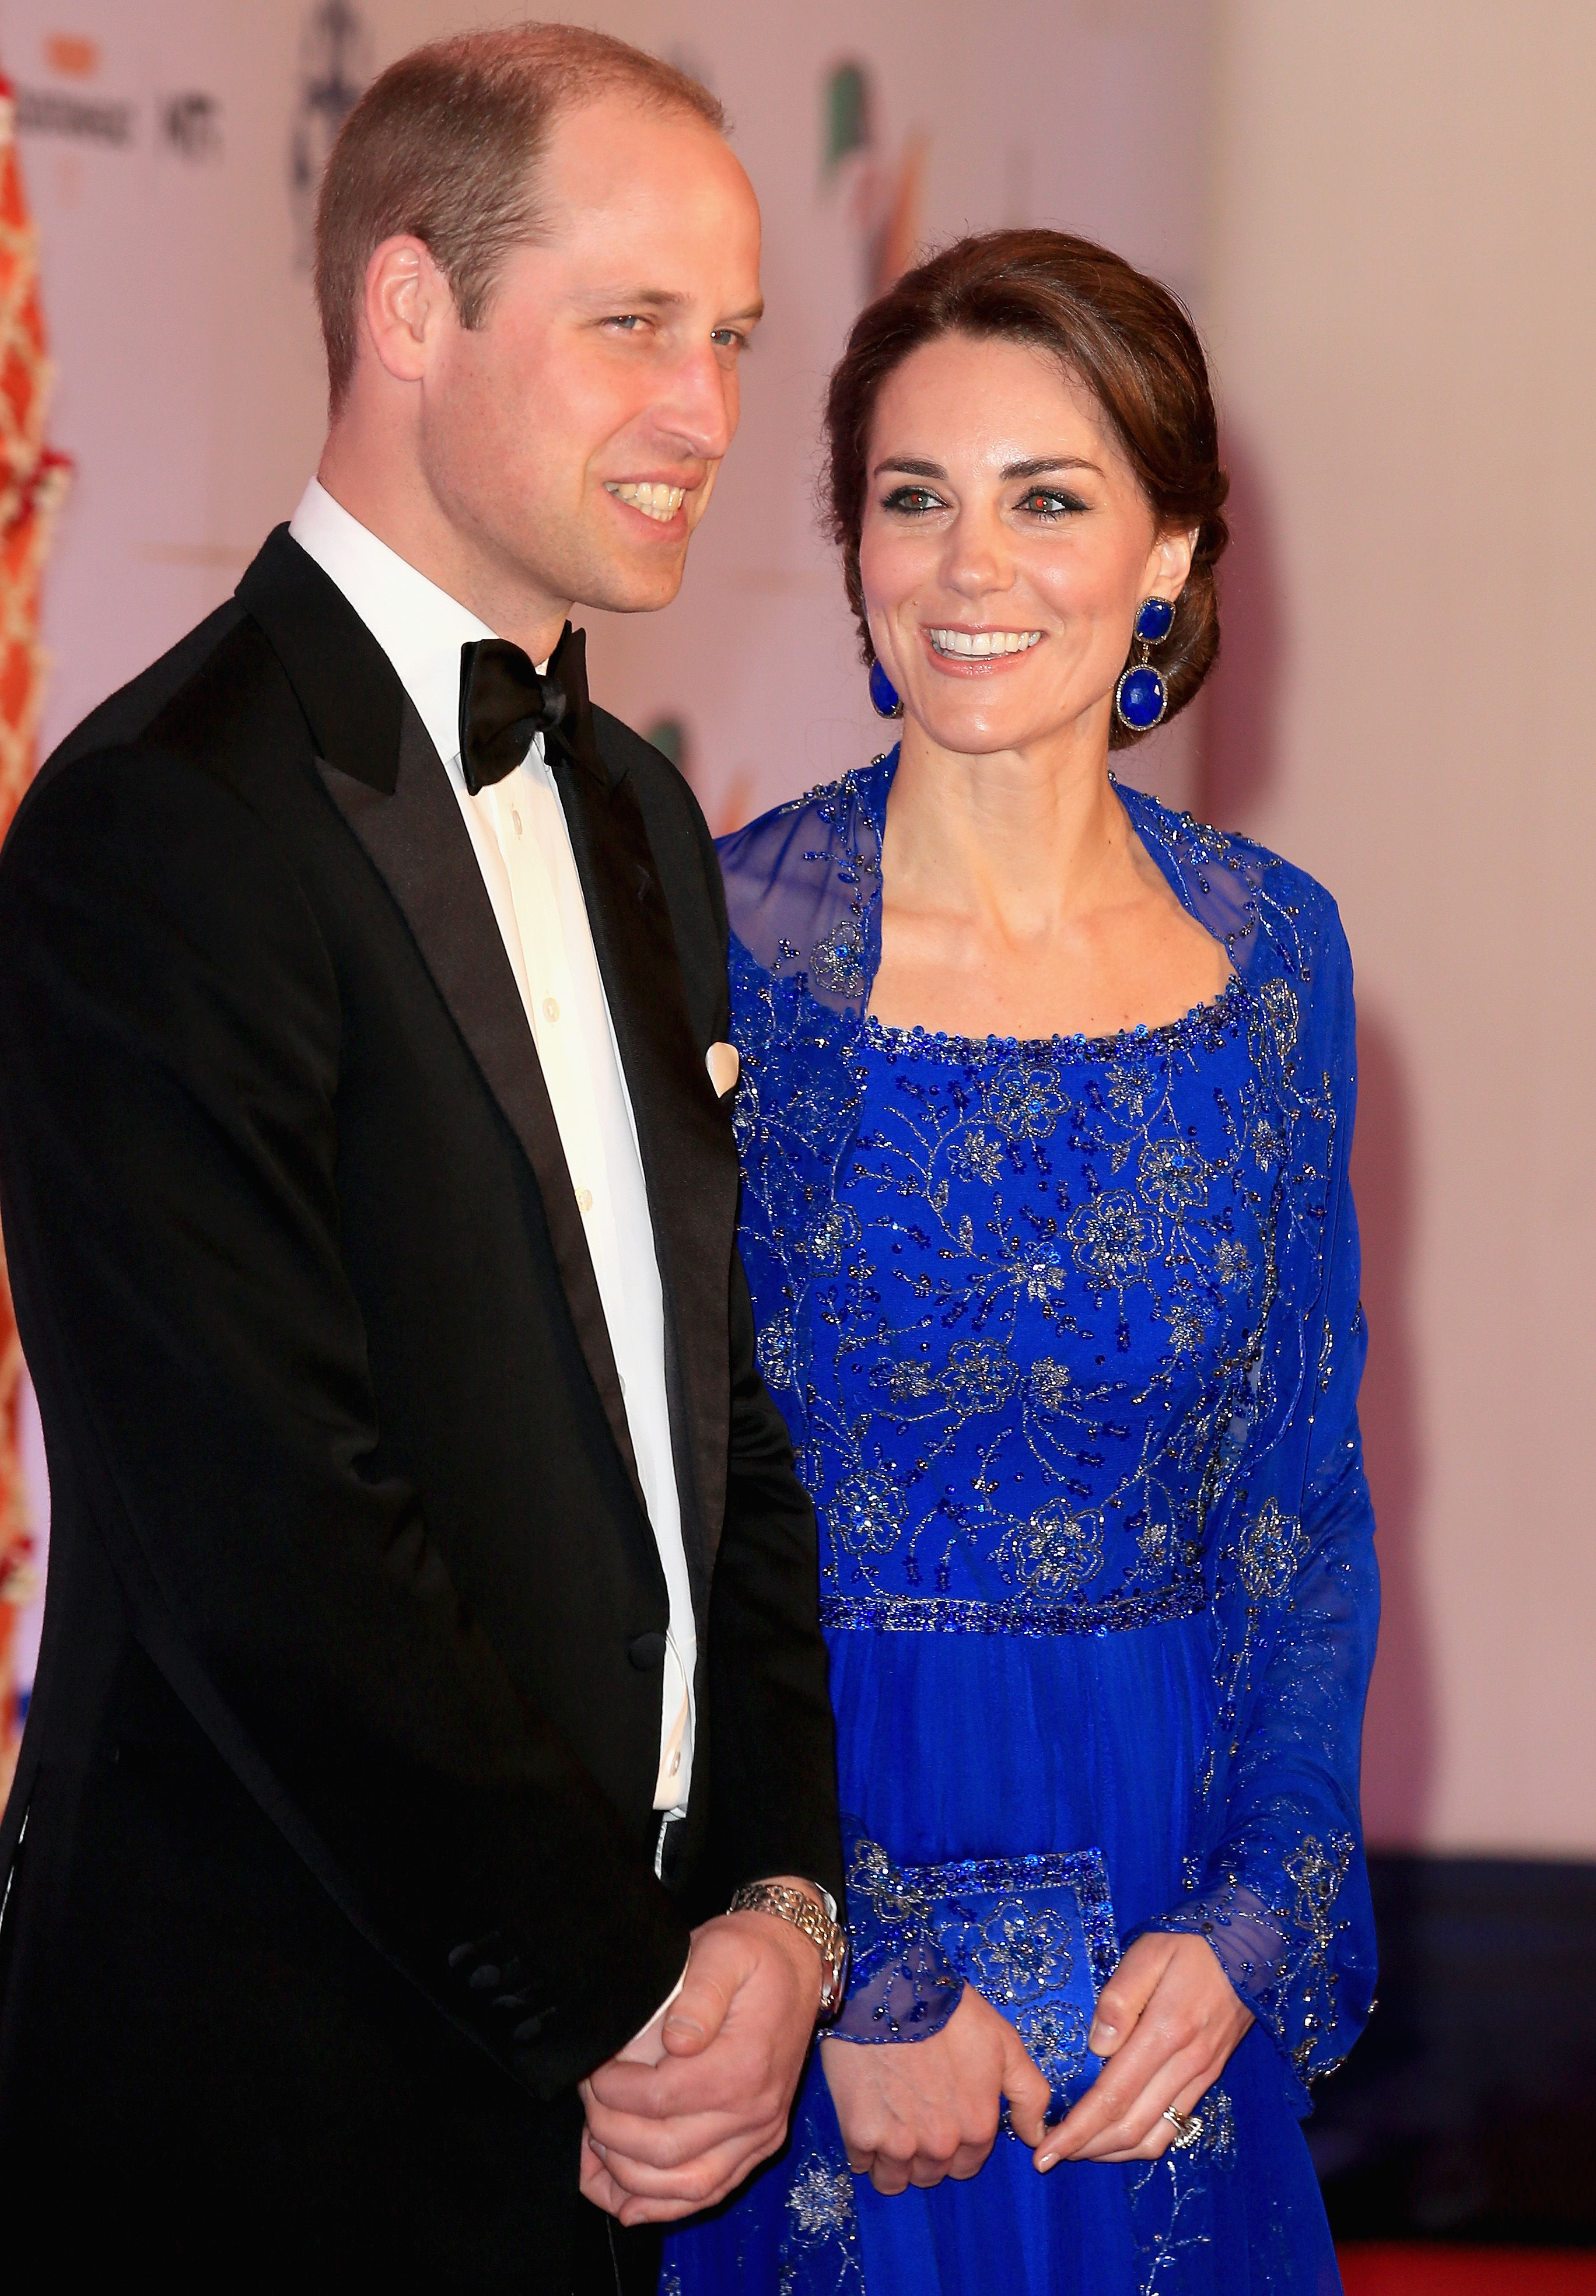 Kate Middletons Outfits From Her Visit To India And Bhutan Embroidery Blouse In Blue Beatrice Clothing Pictures Of The Royal Tour